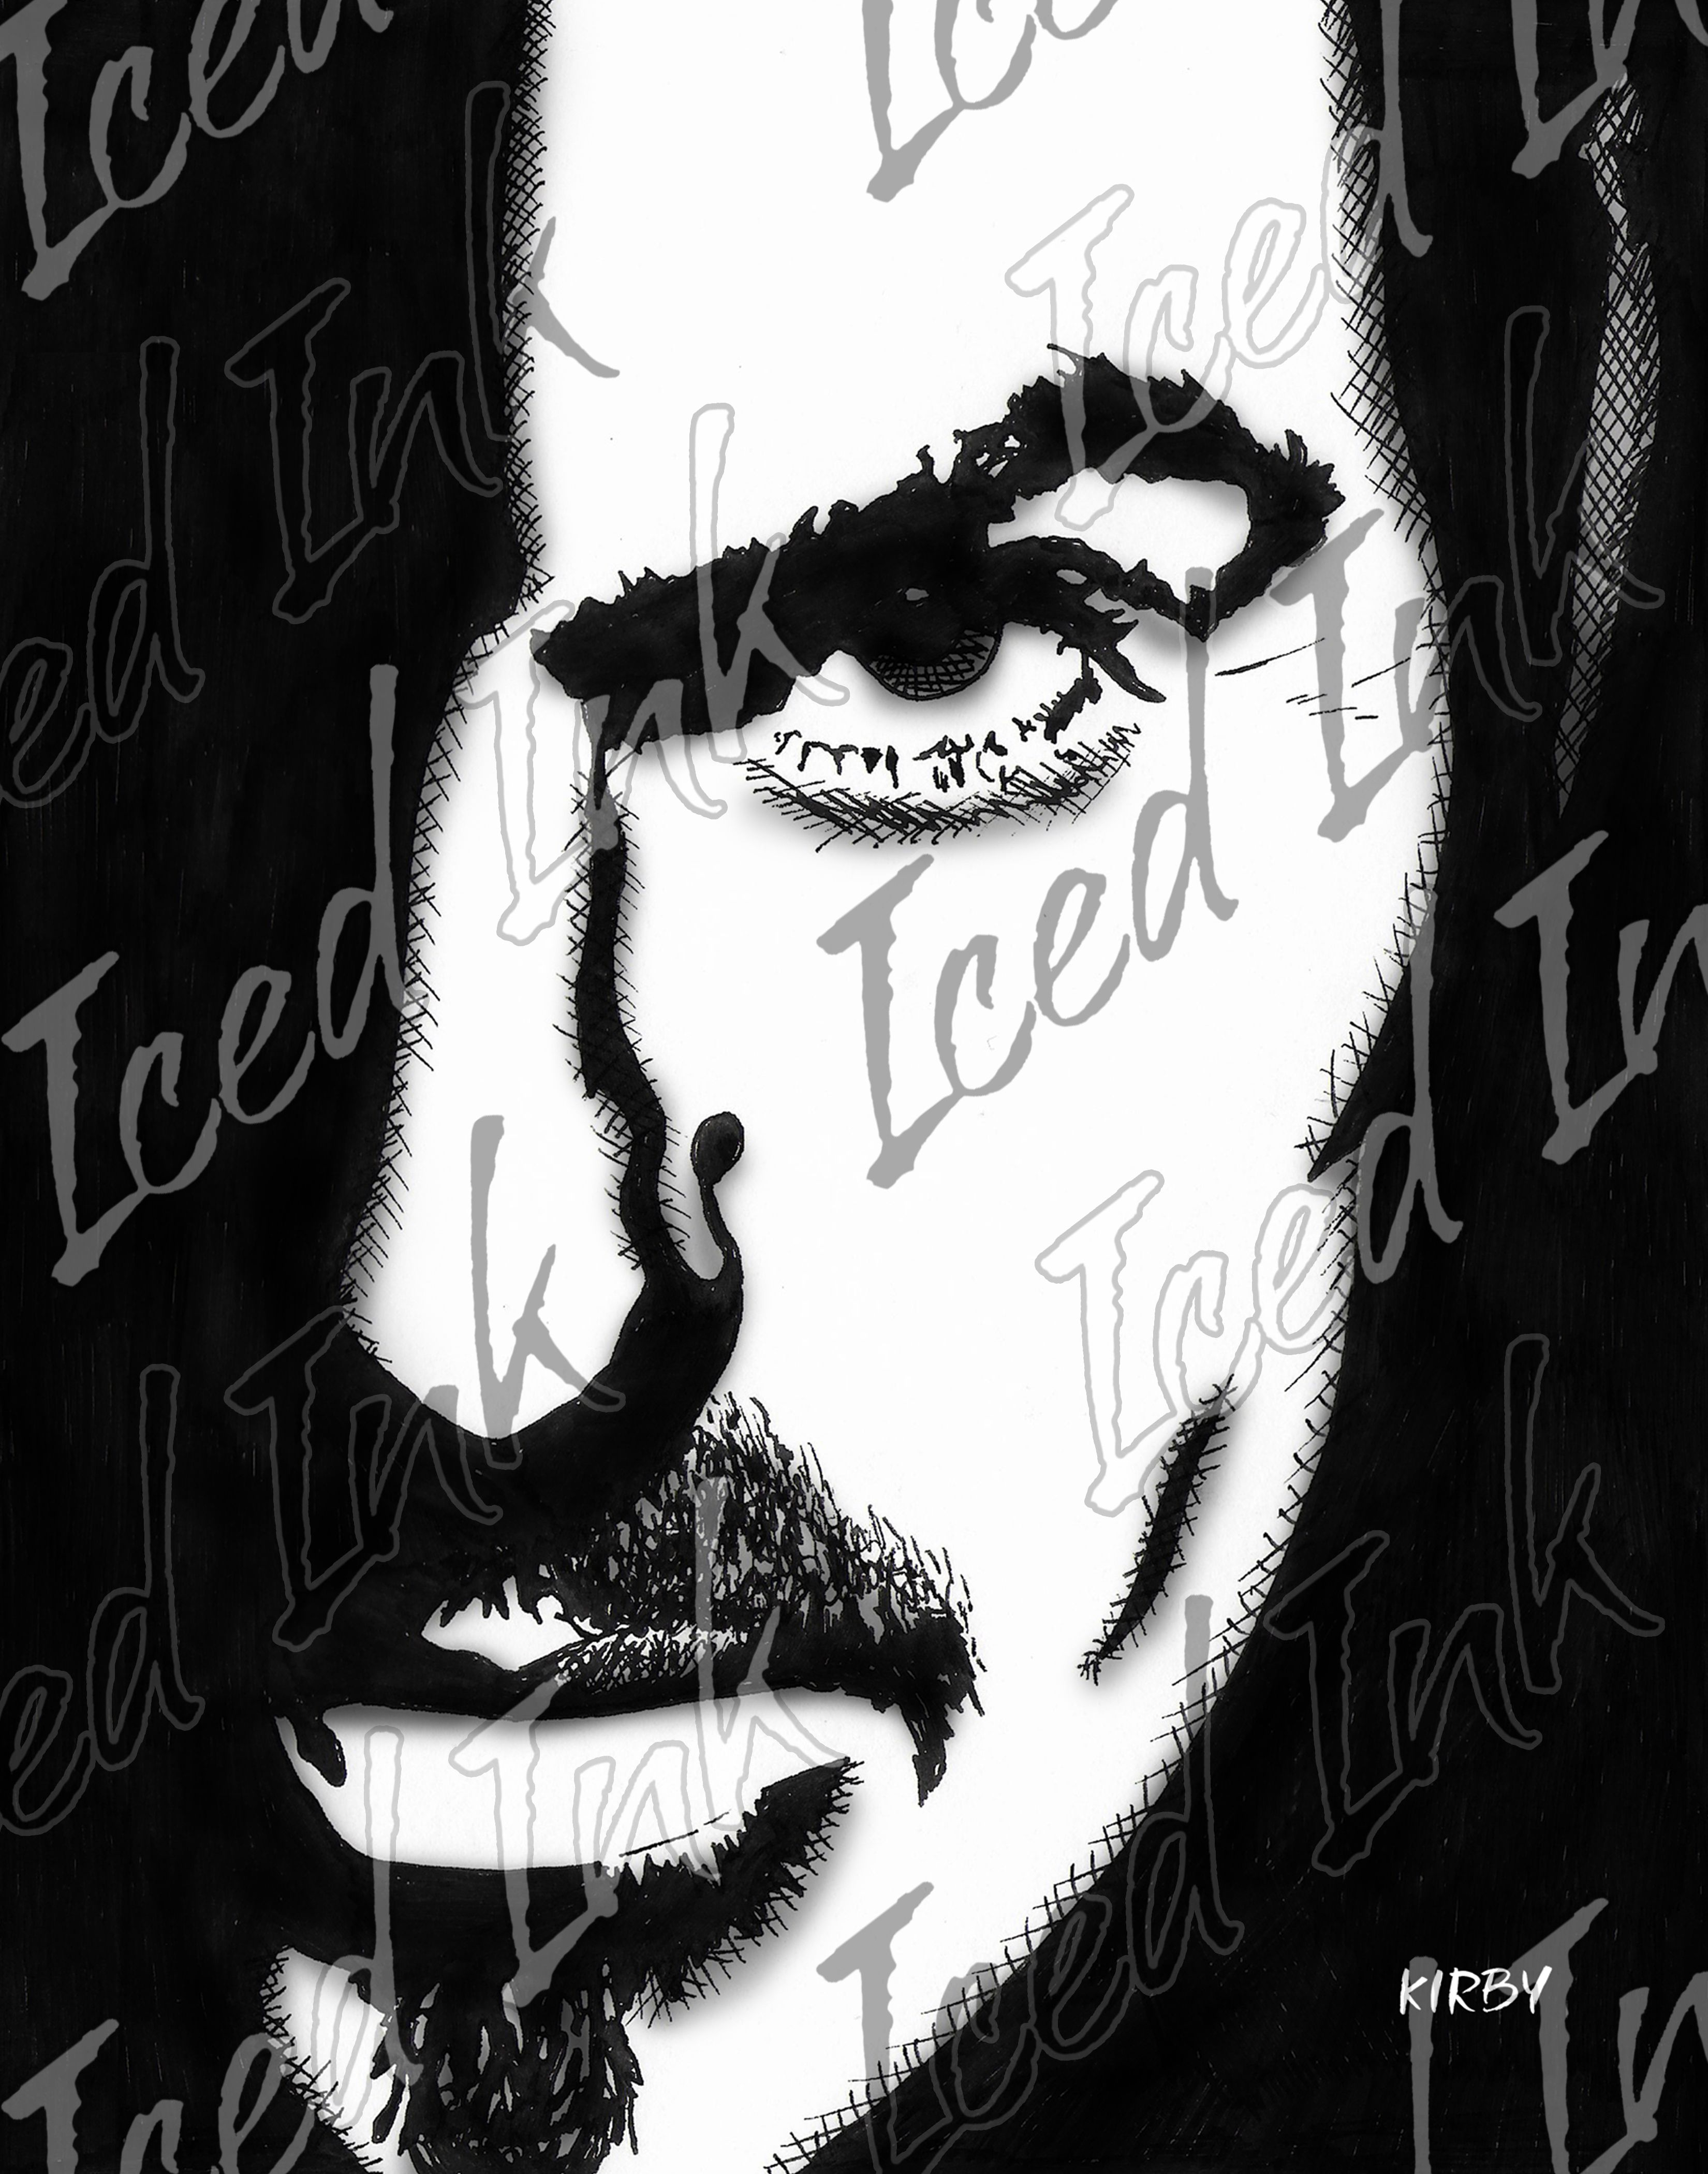 Framed Art Print On Canvas George Michael By Iced Ink George Michael Hand Art Drawing Art Prints